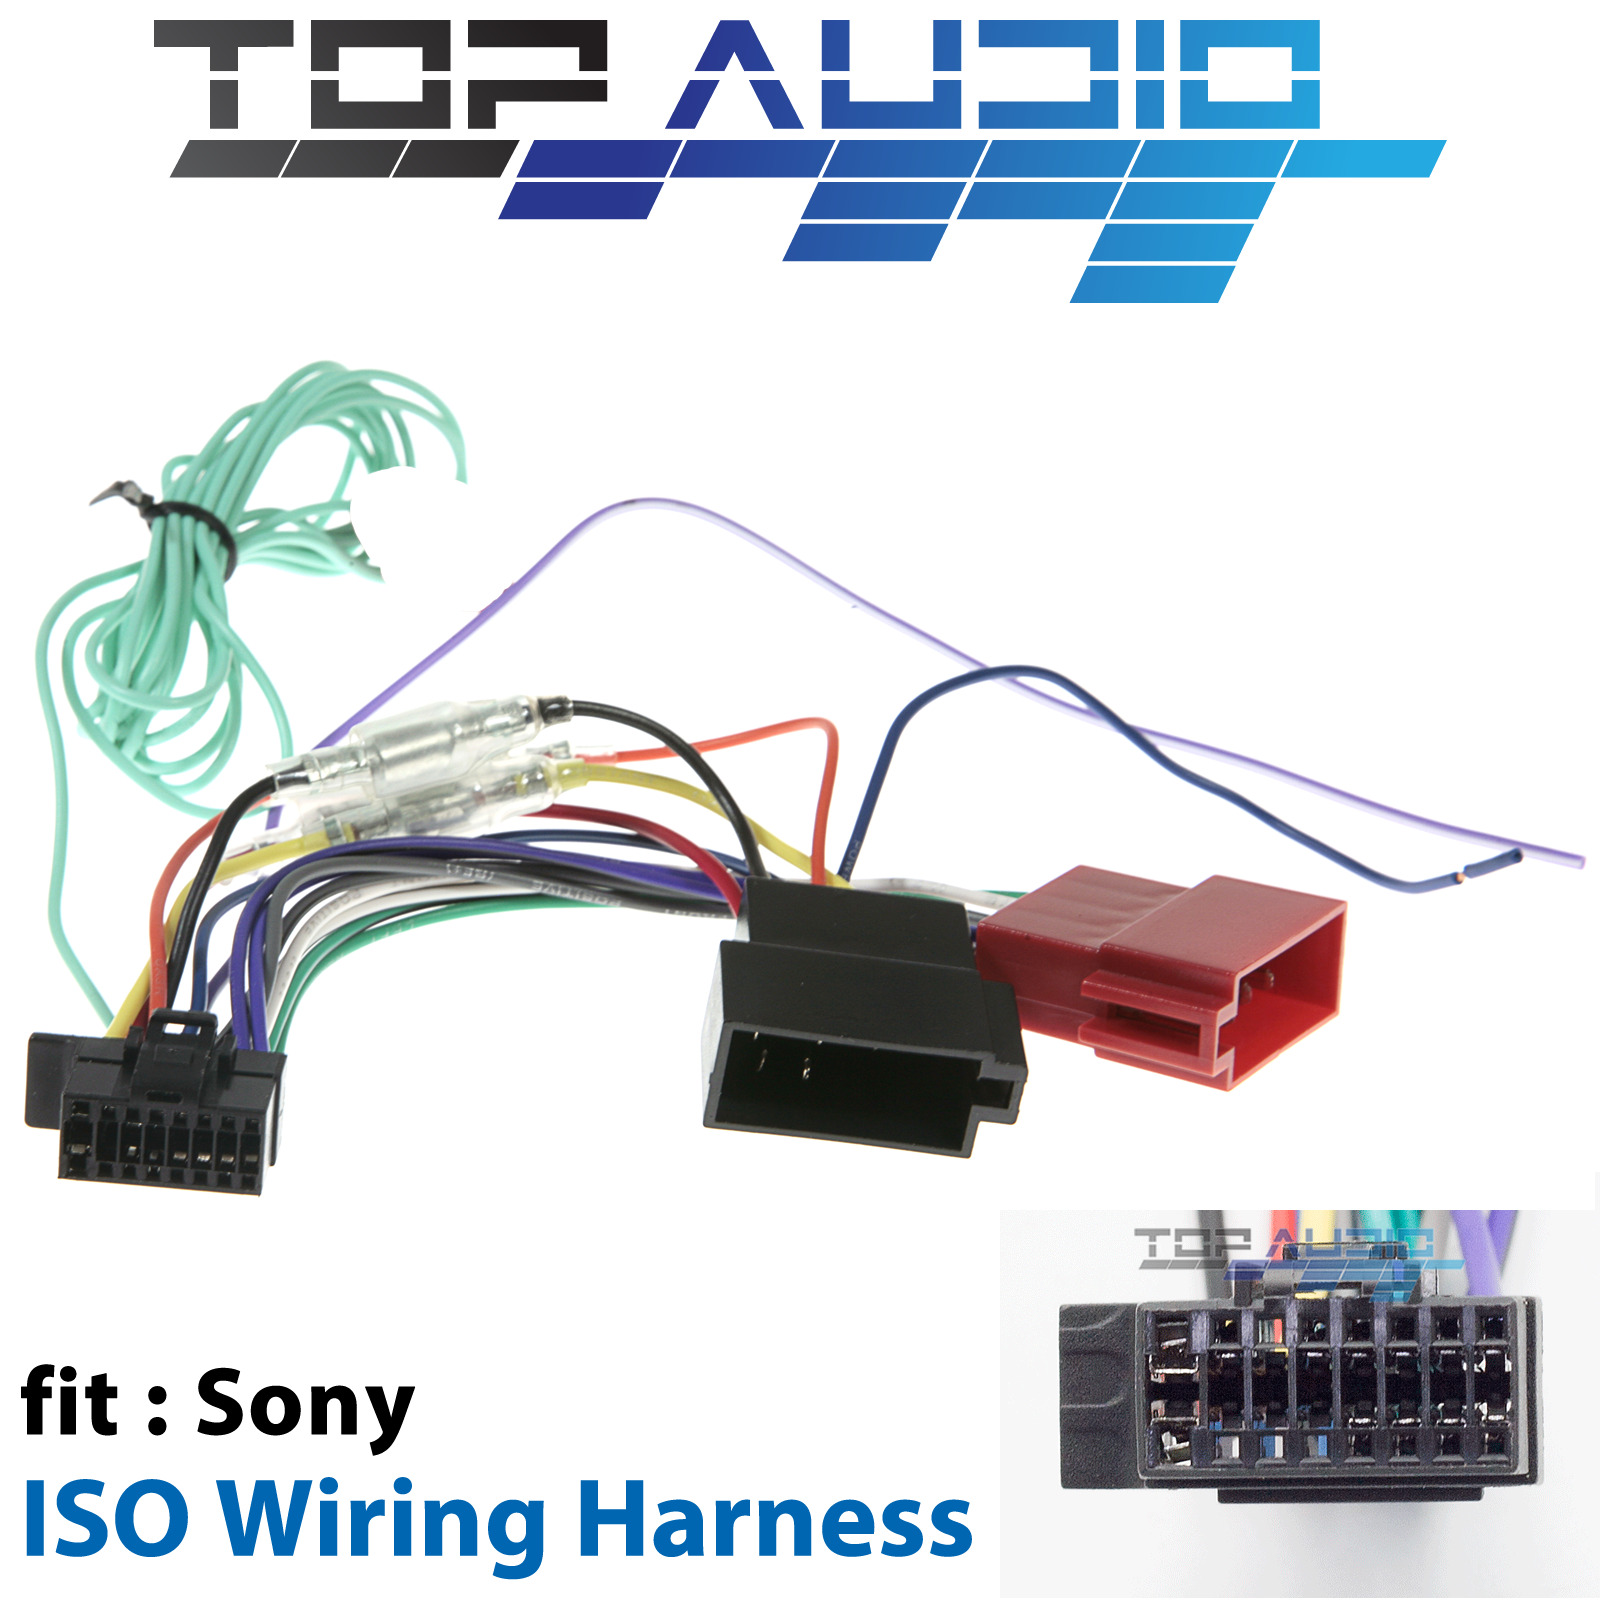 Fit Sony Xav Ax5000 Iso Wiring Harness Cable Adaptor Connector Lead Wire Loom For Sale